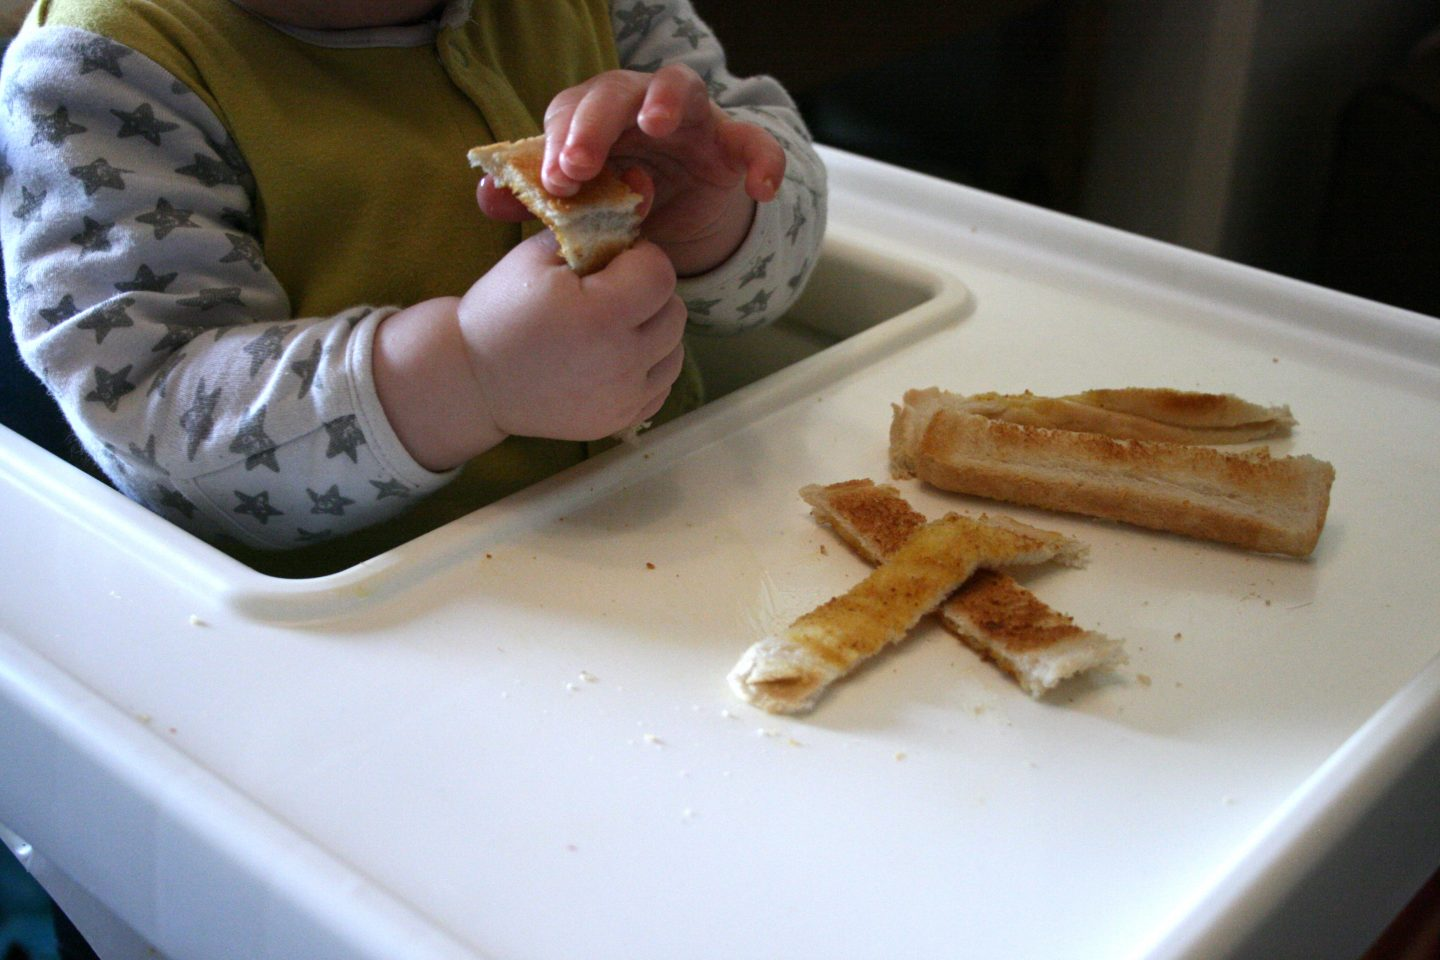 Baby Breakfast Ideas from other Bloggers